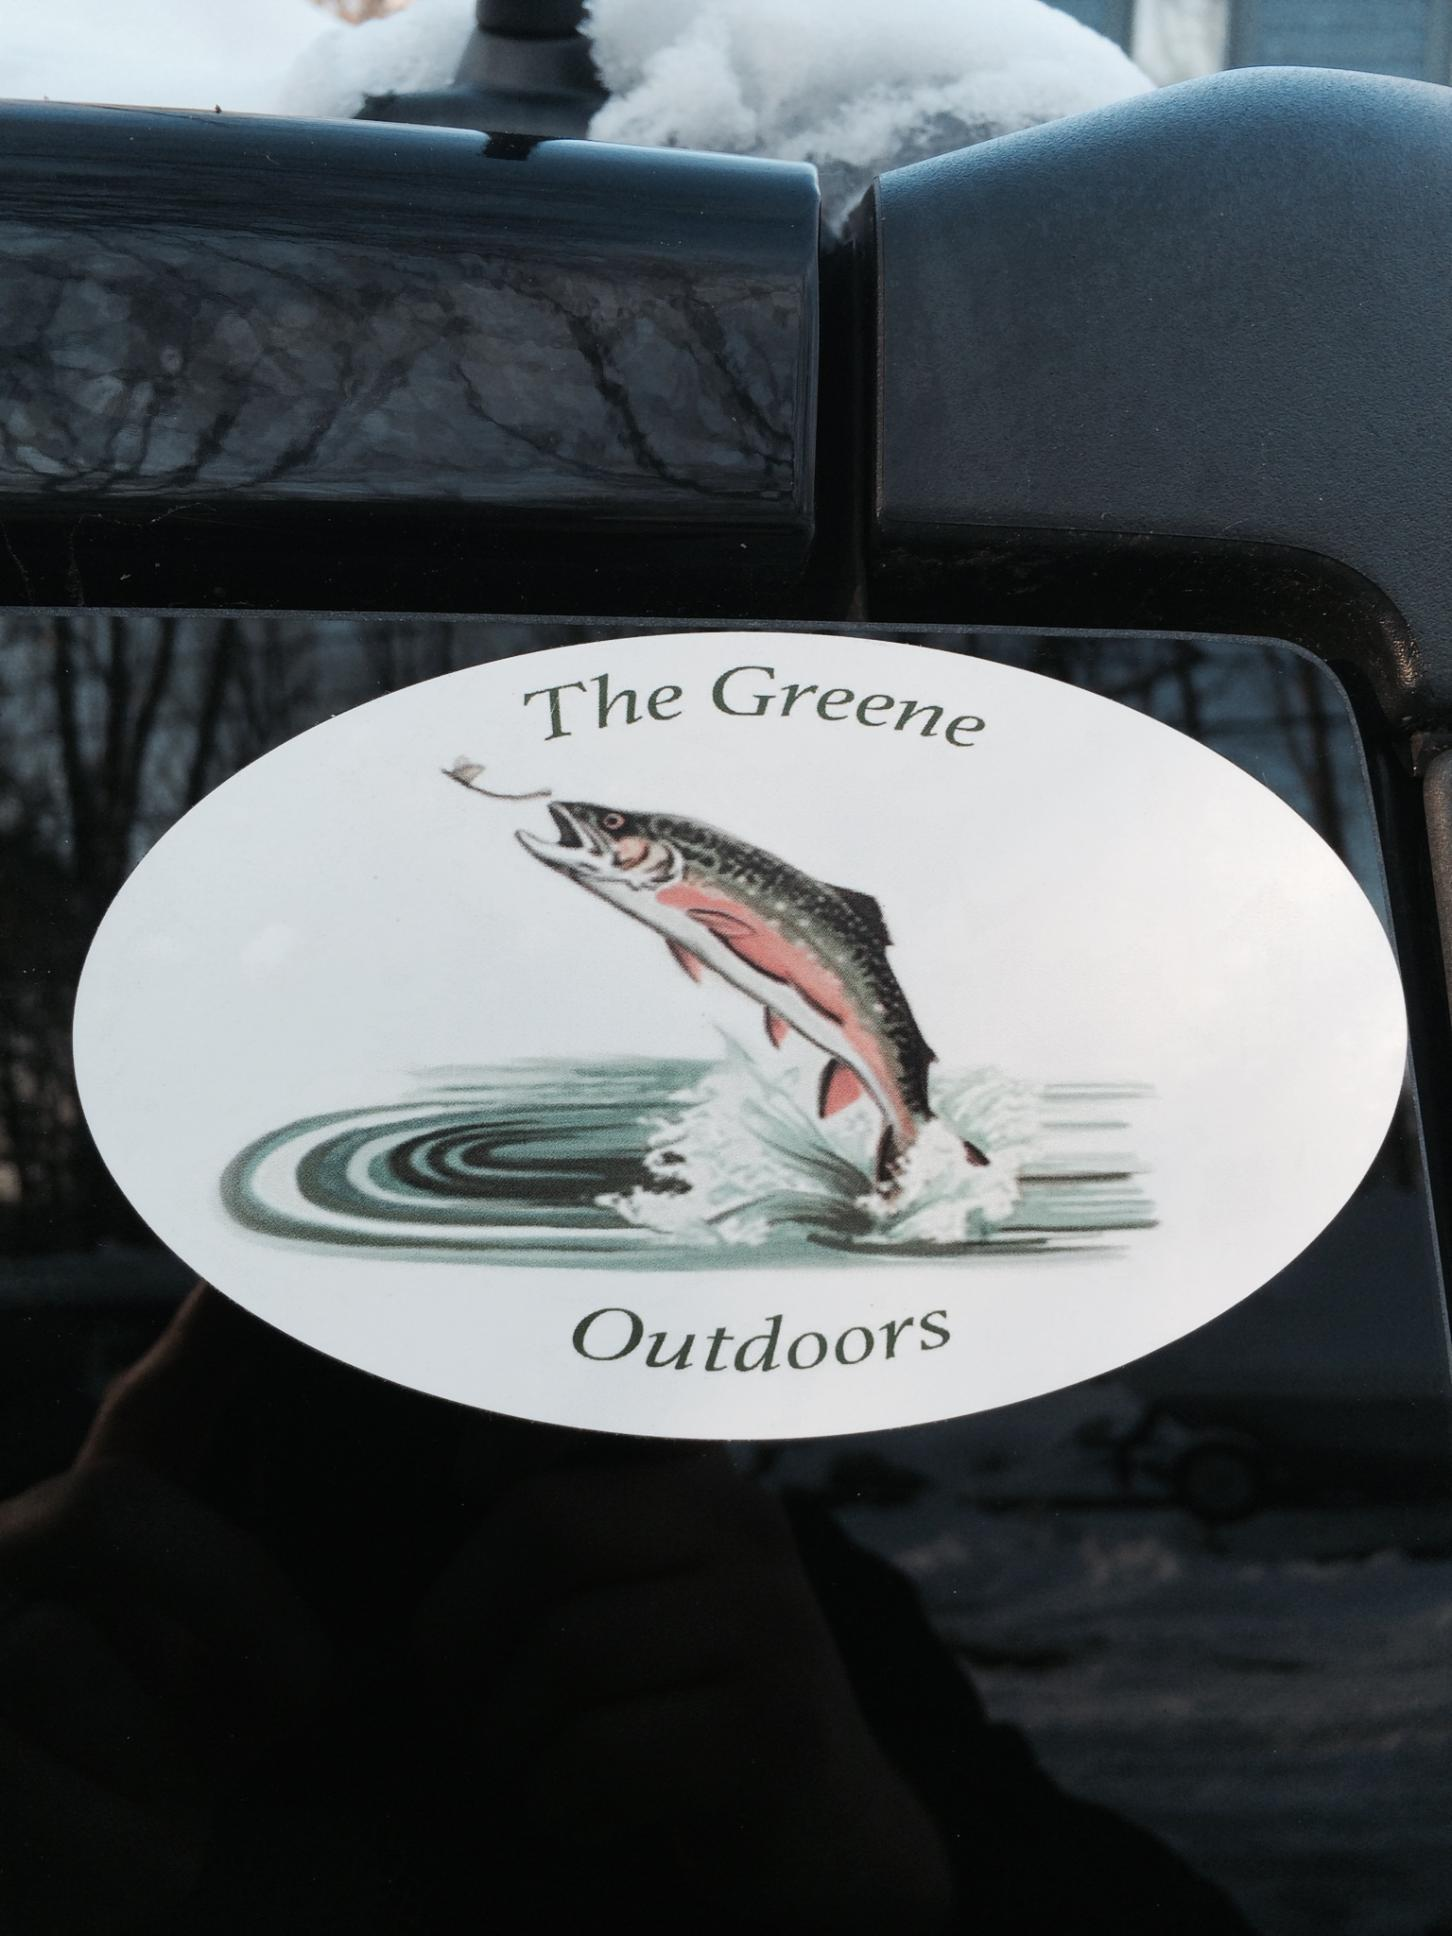 the-greene-outdoors-sticker